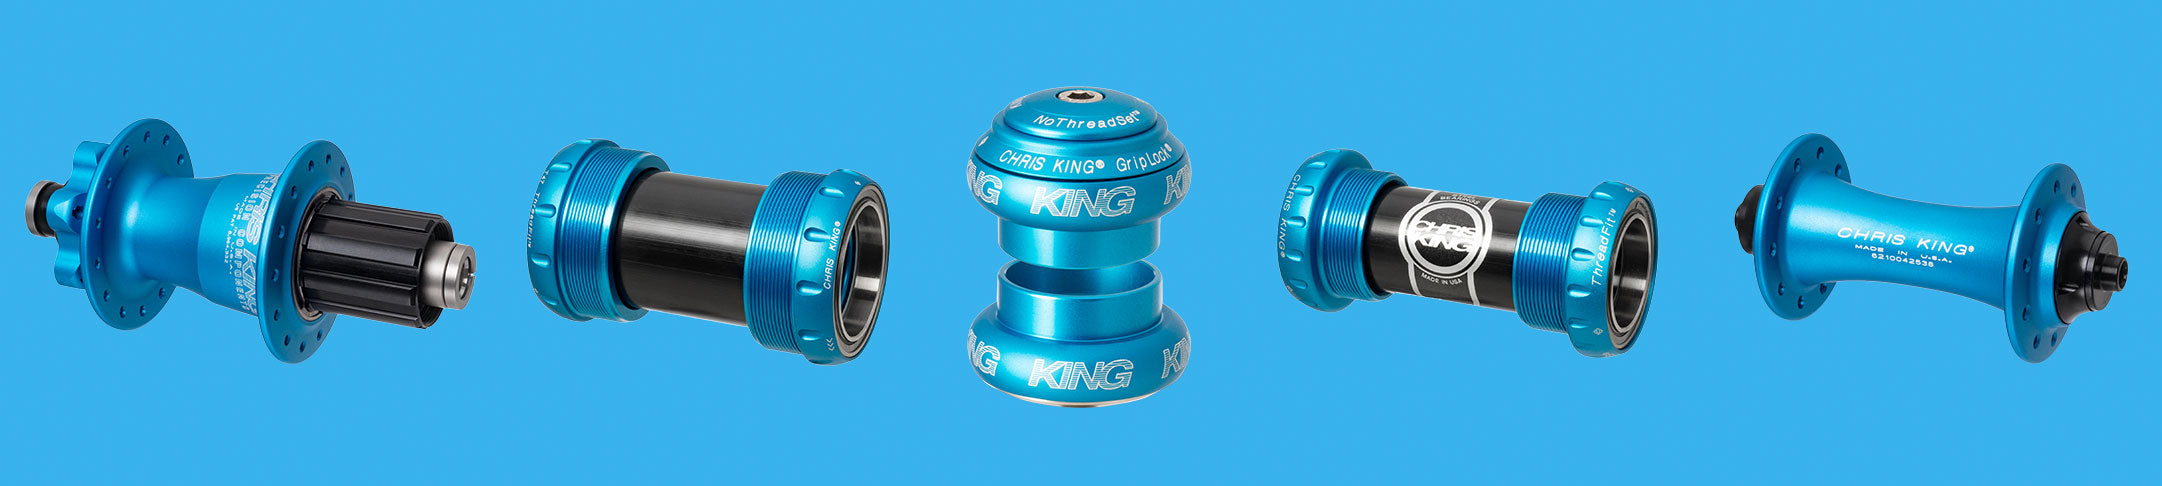 NEW! Chris King Matte Turquoise Components